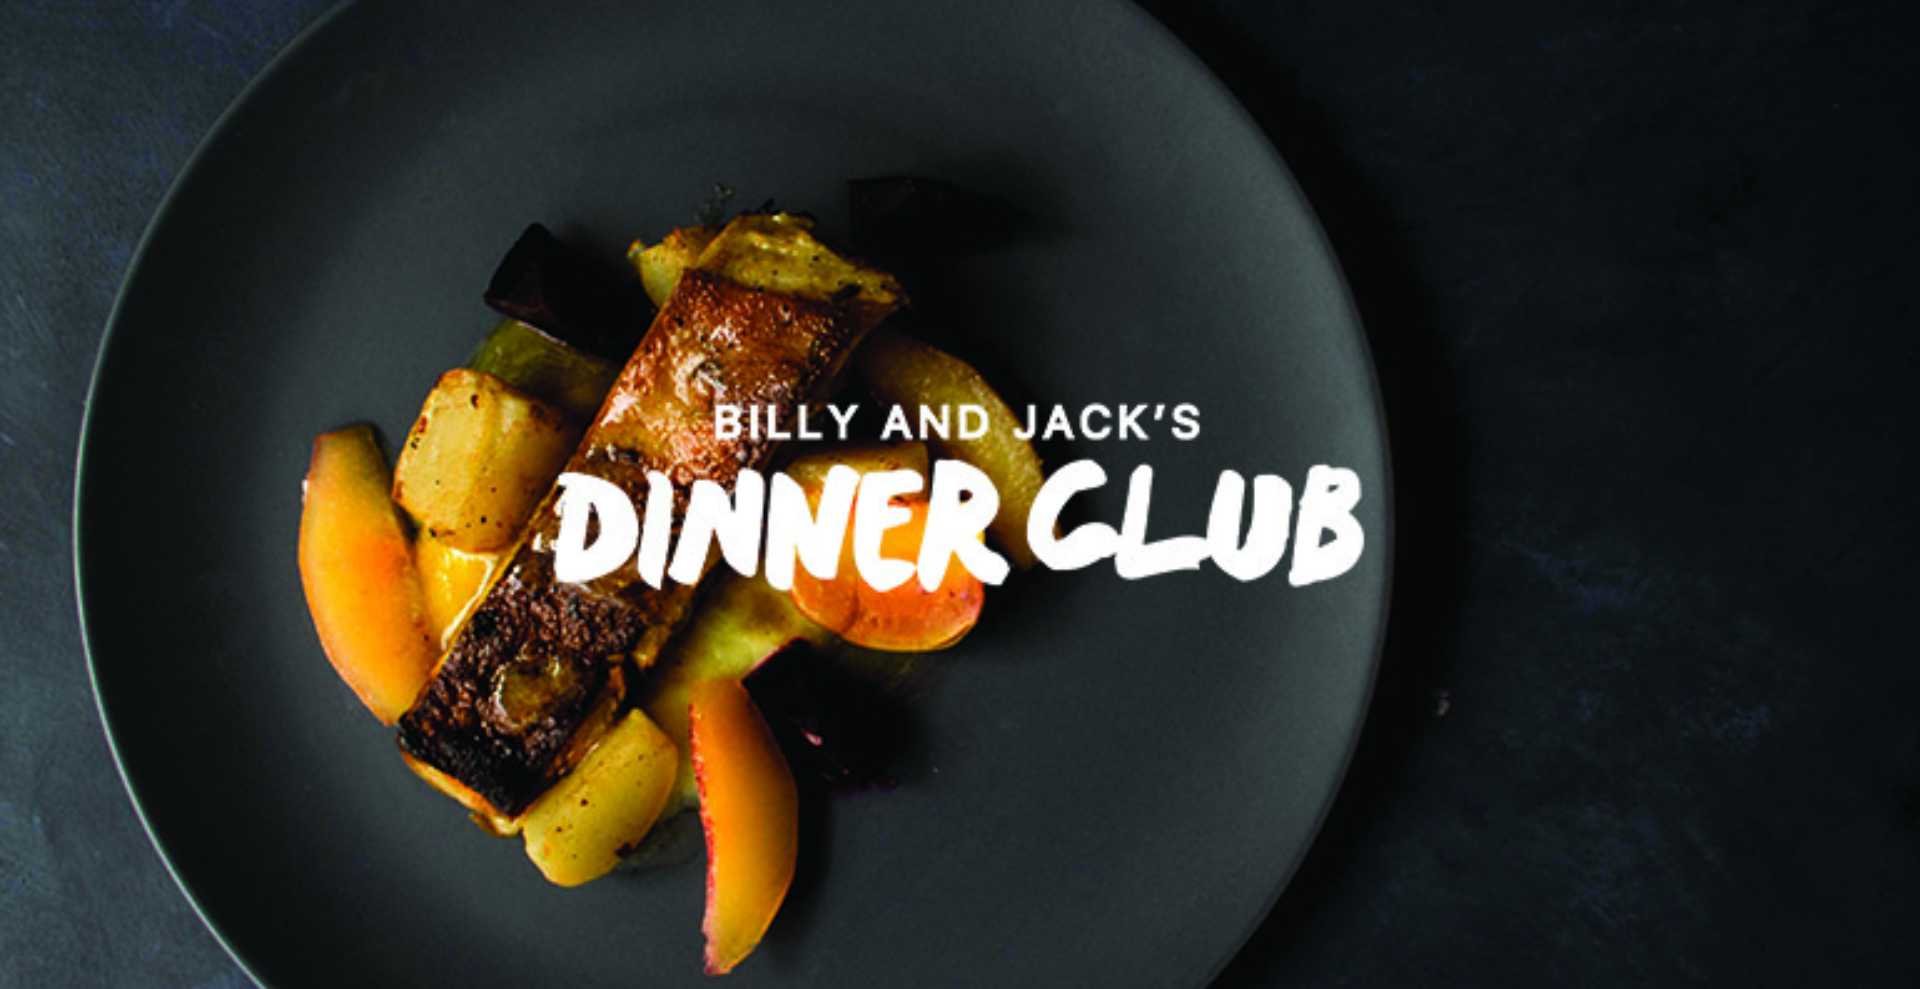 Billy and Jack's Dinner Club